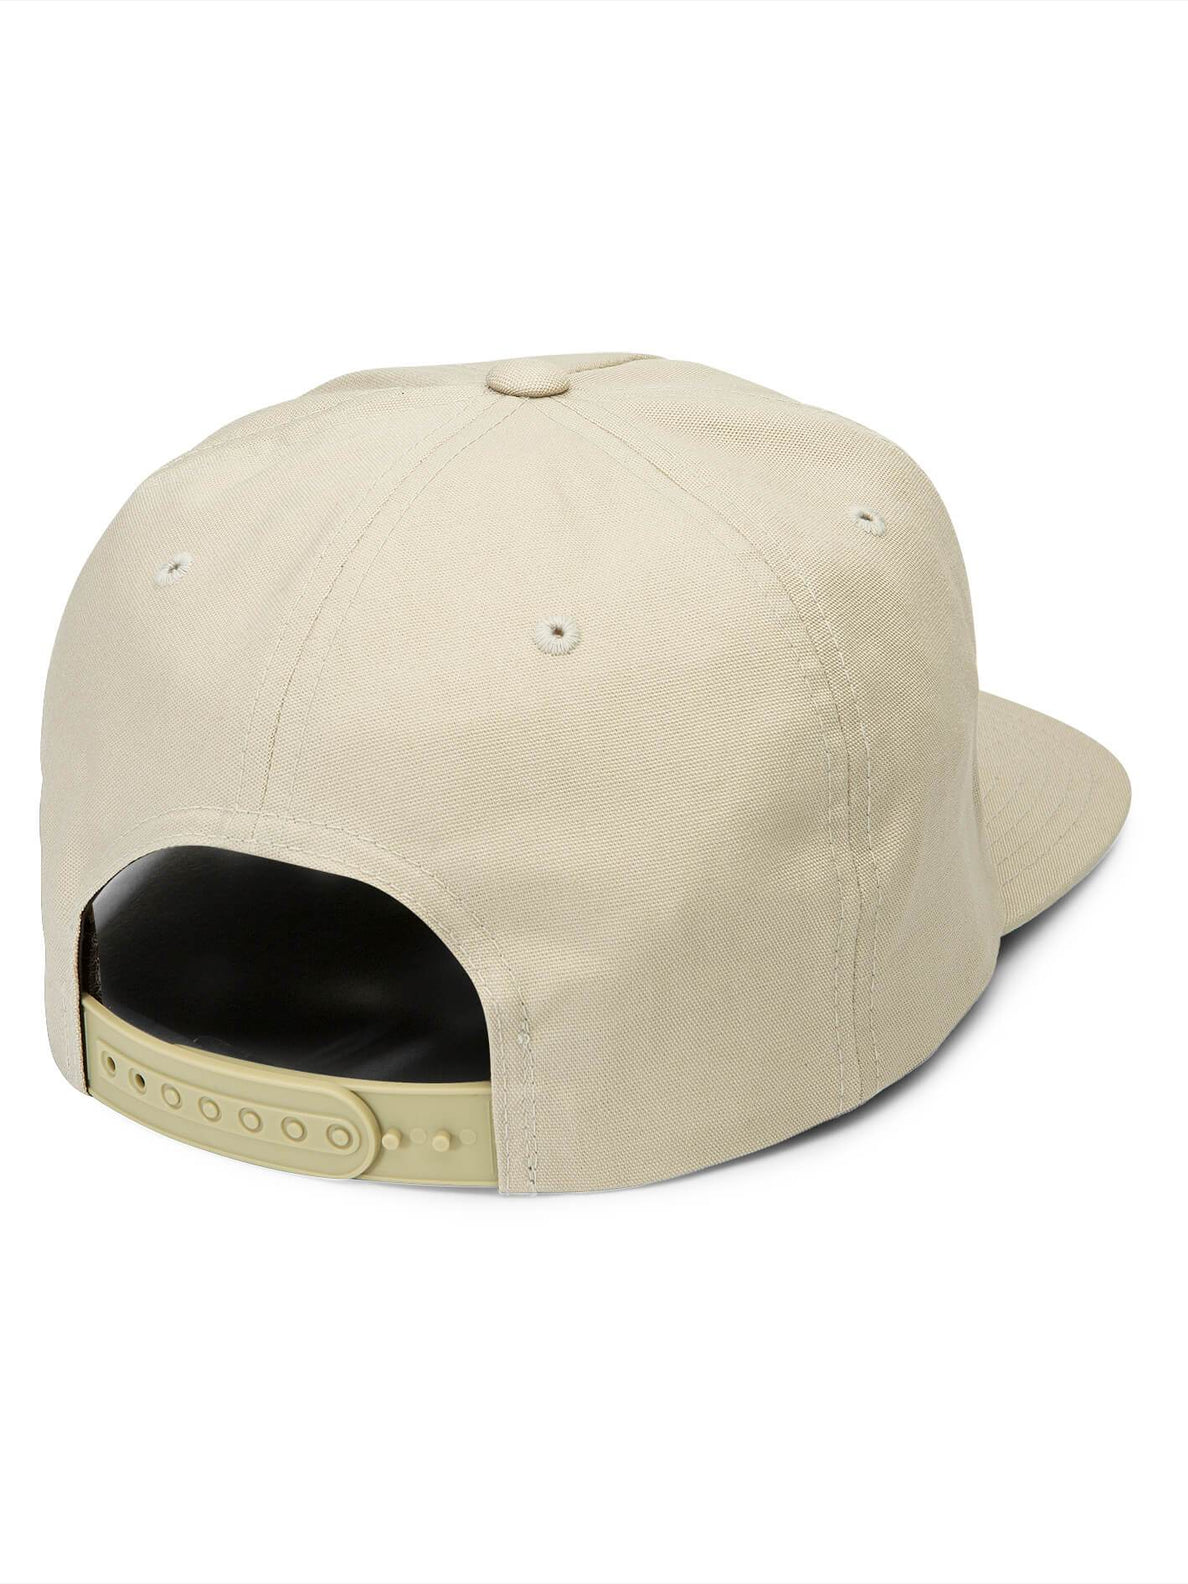 Transporter Hat In Sand Brown, Back View